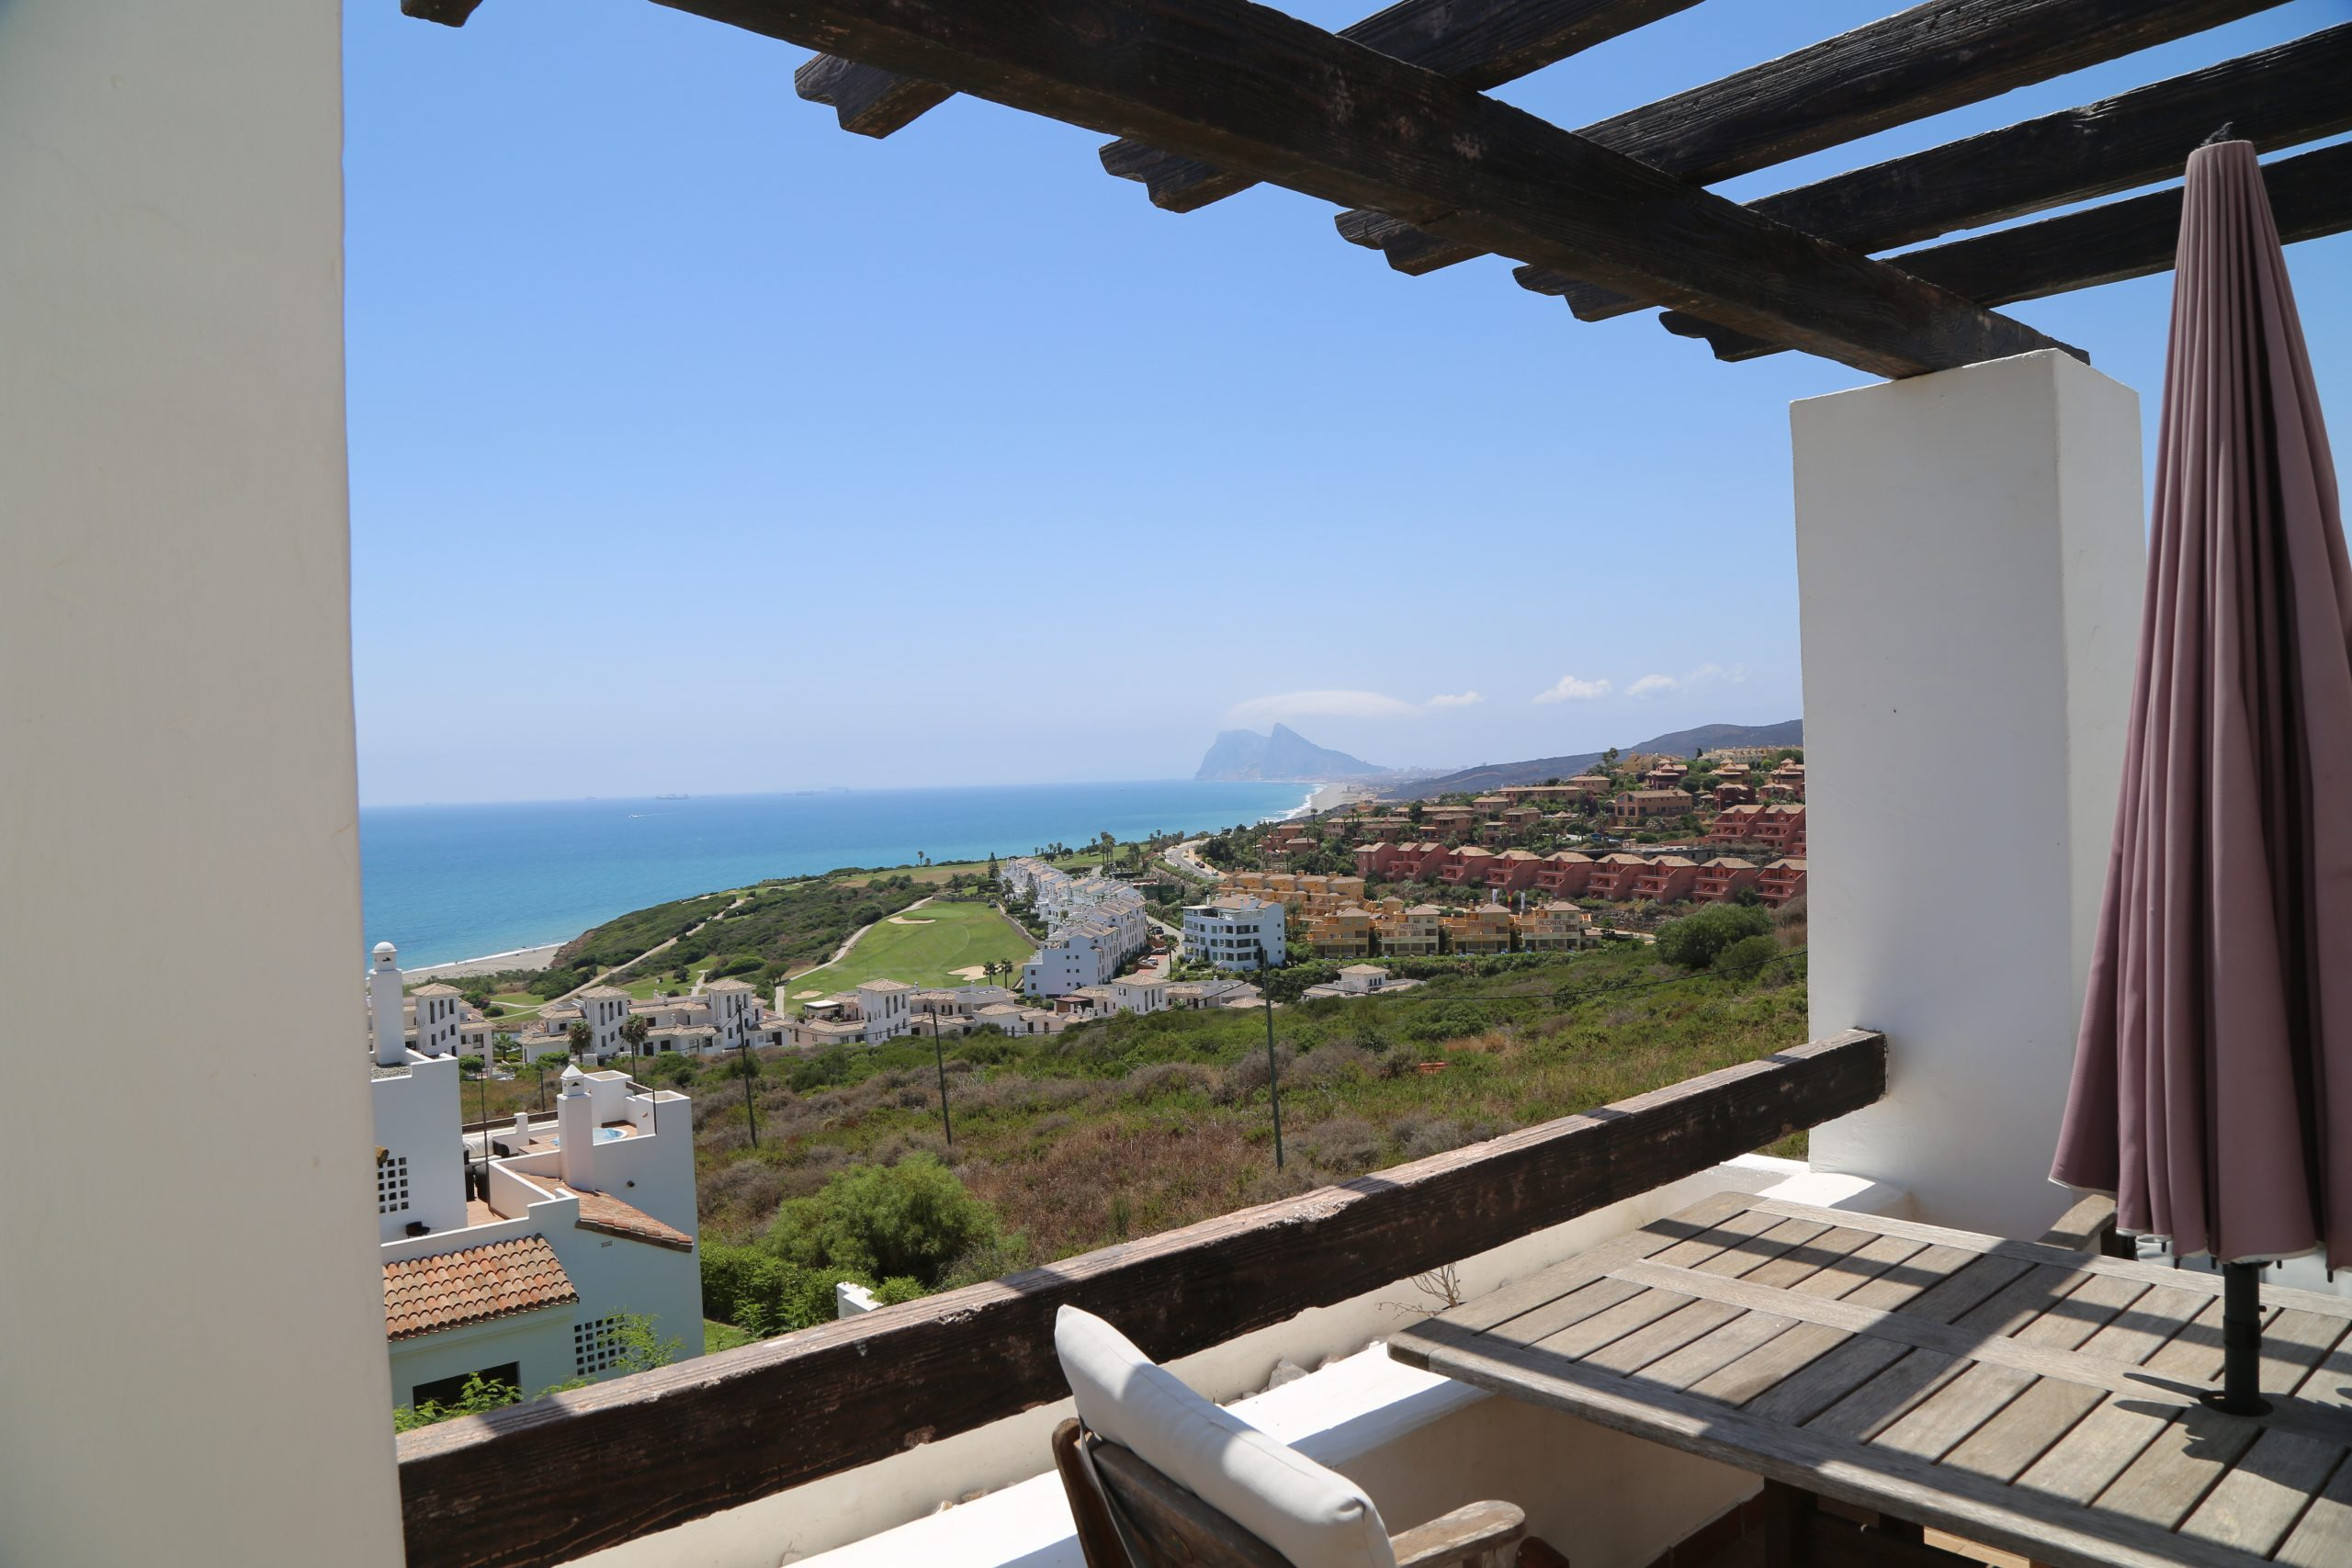 3 bedroom penthouse with amazing views over the sea and Gibraltar